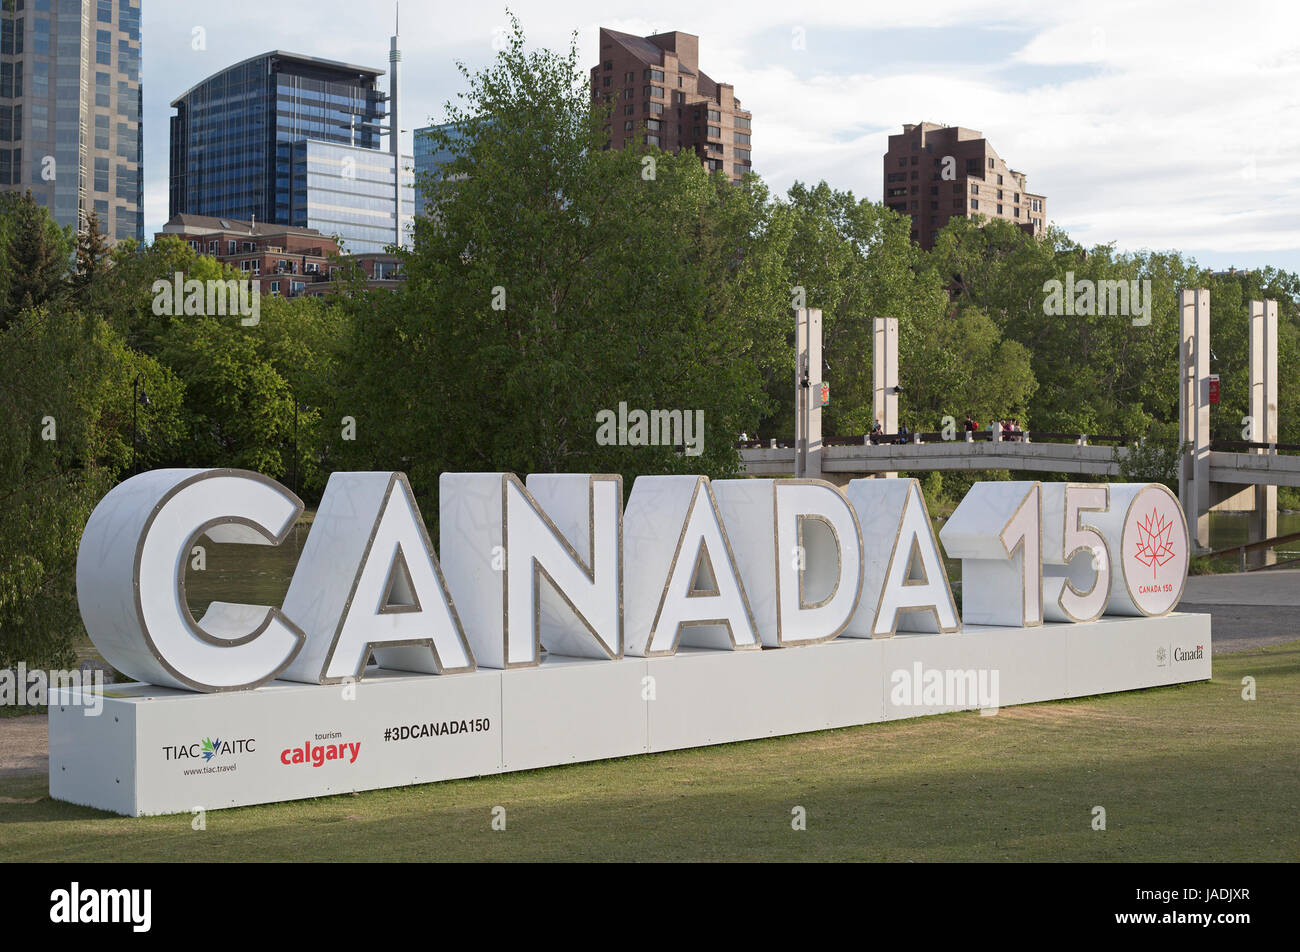 Canada 150 three dimensional sign celebrating the country's 150th anniversary since Confederation, on Prince's - Stock Image